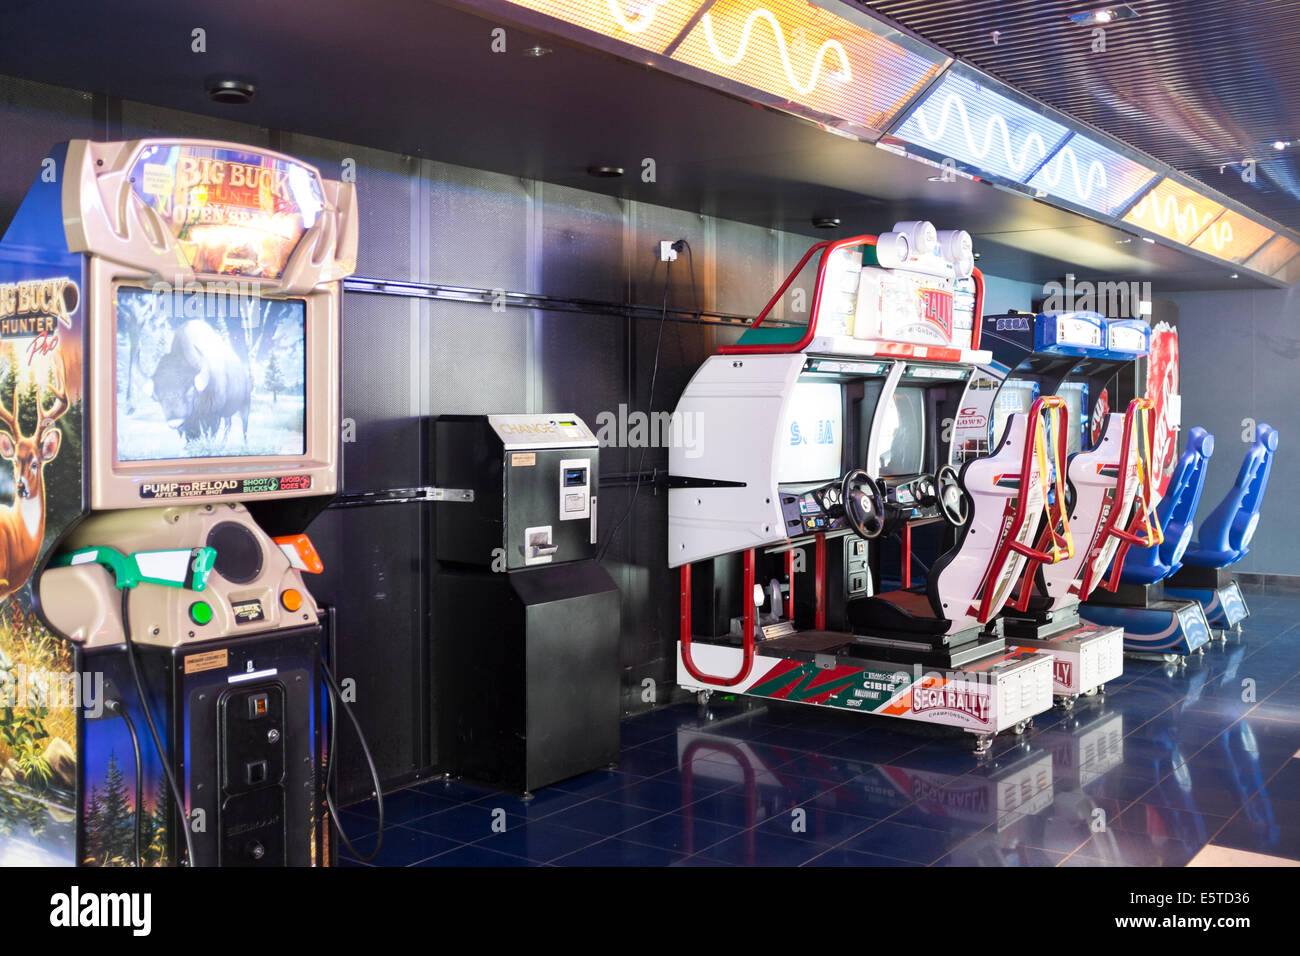 Arcade games machines on board a ferry - Stock Image